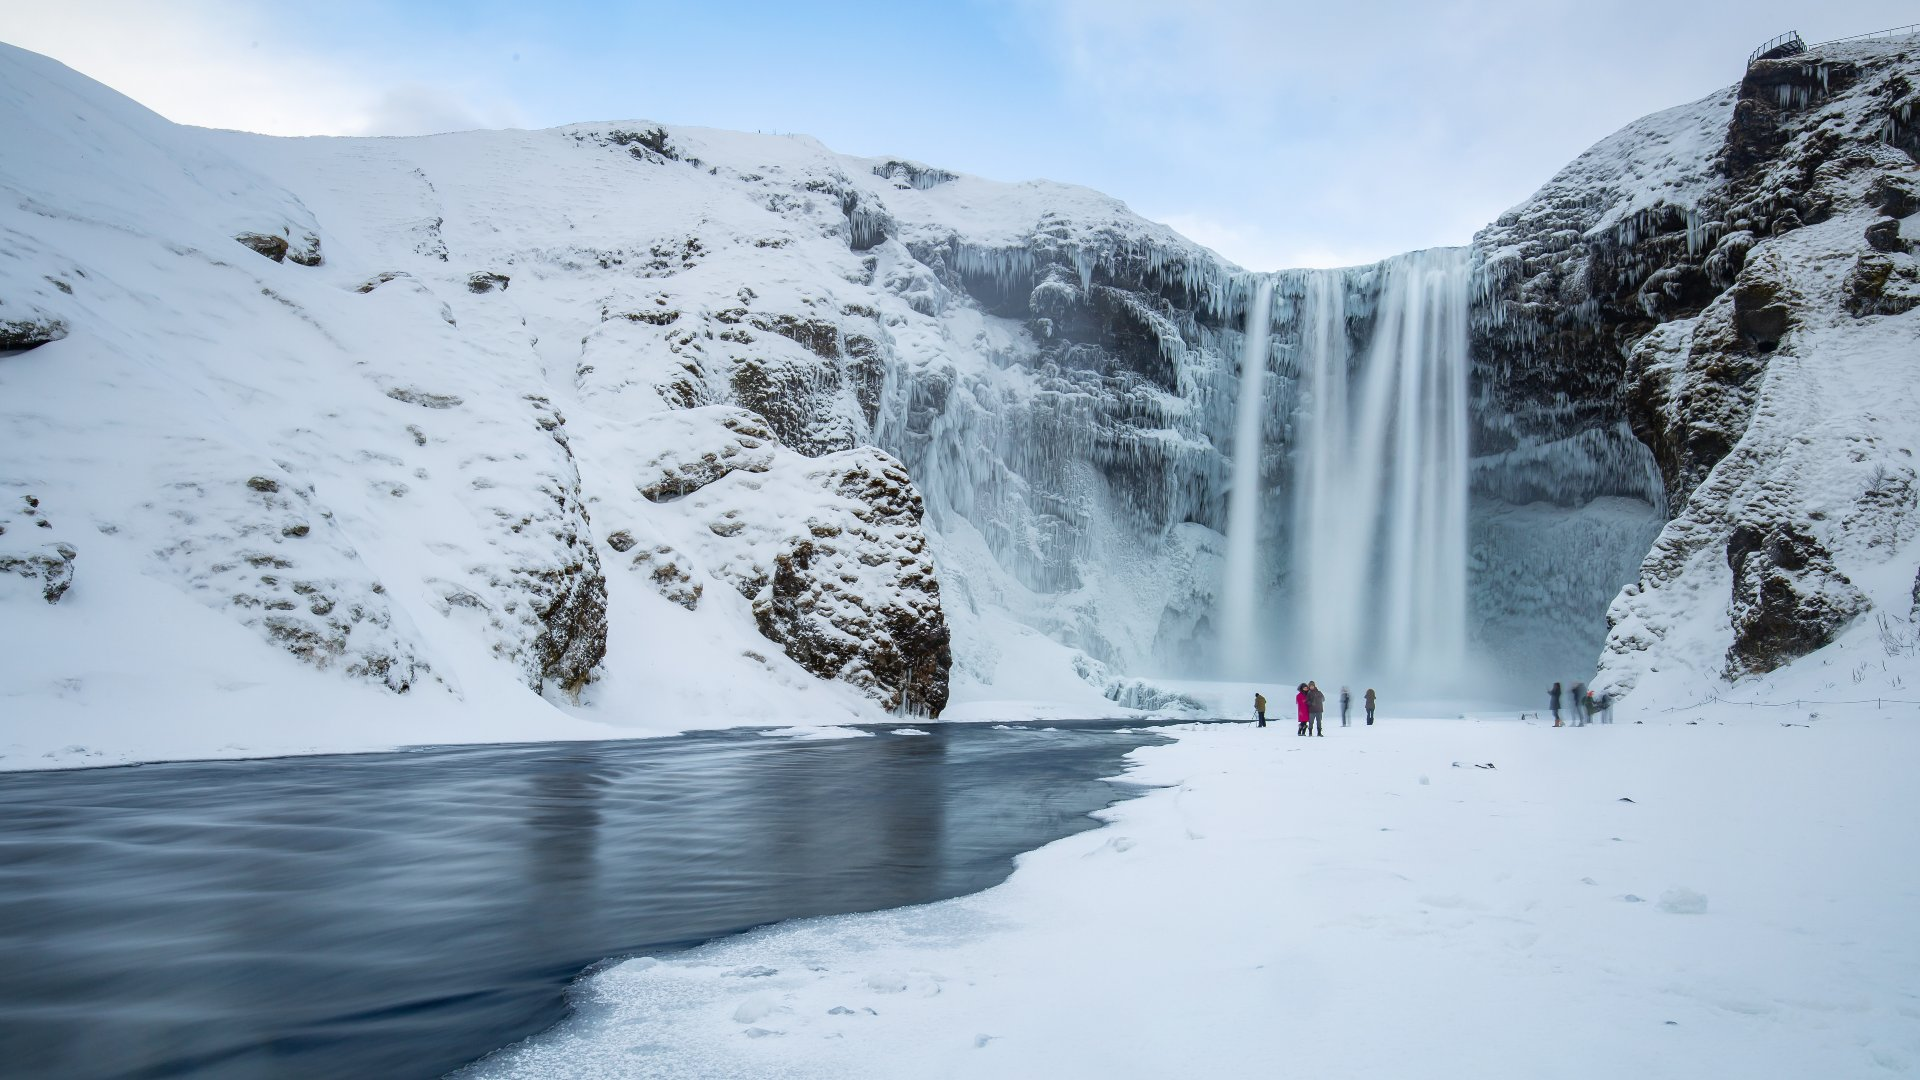 The Skógafoss waterfall surrounded by snow and ice.